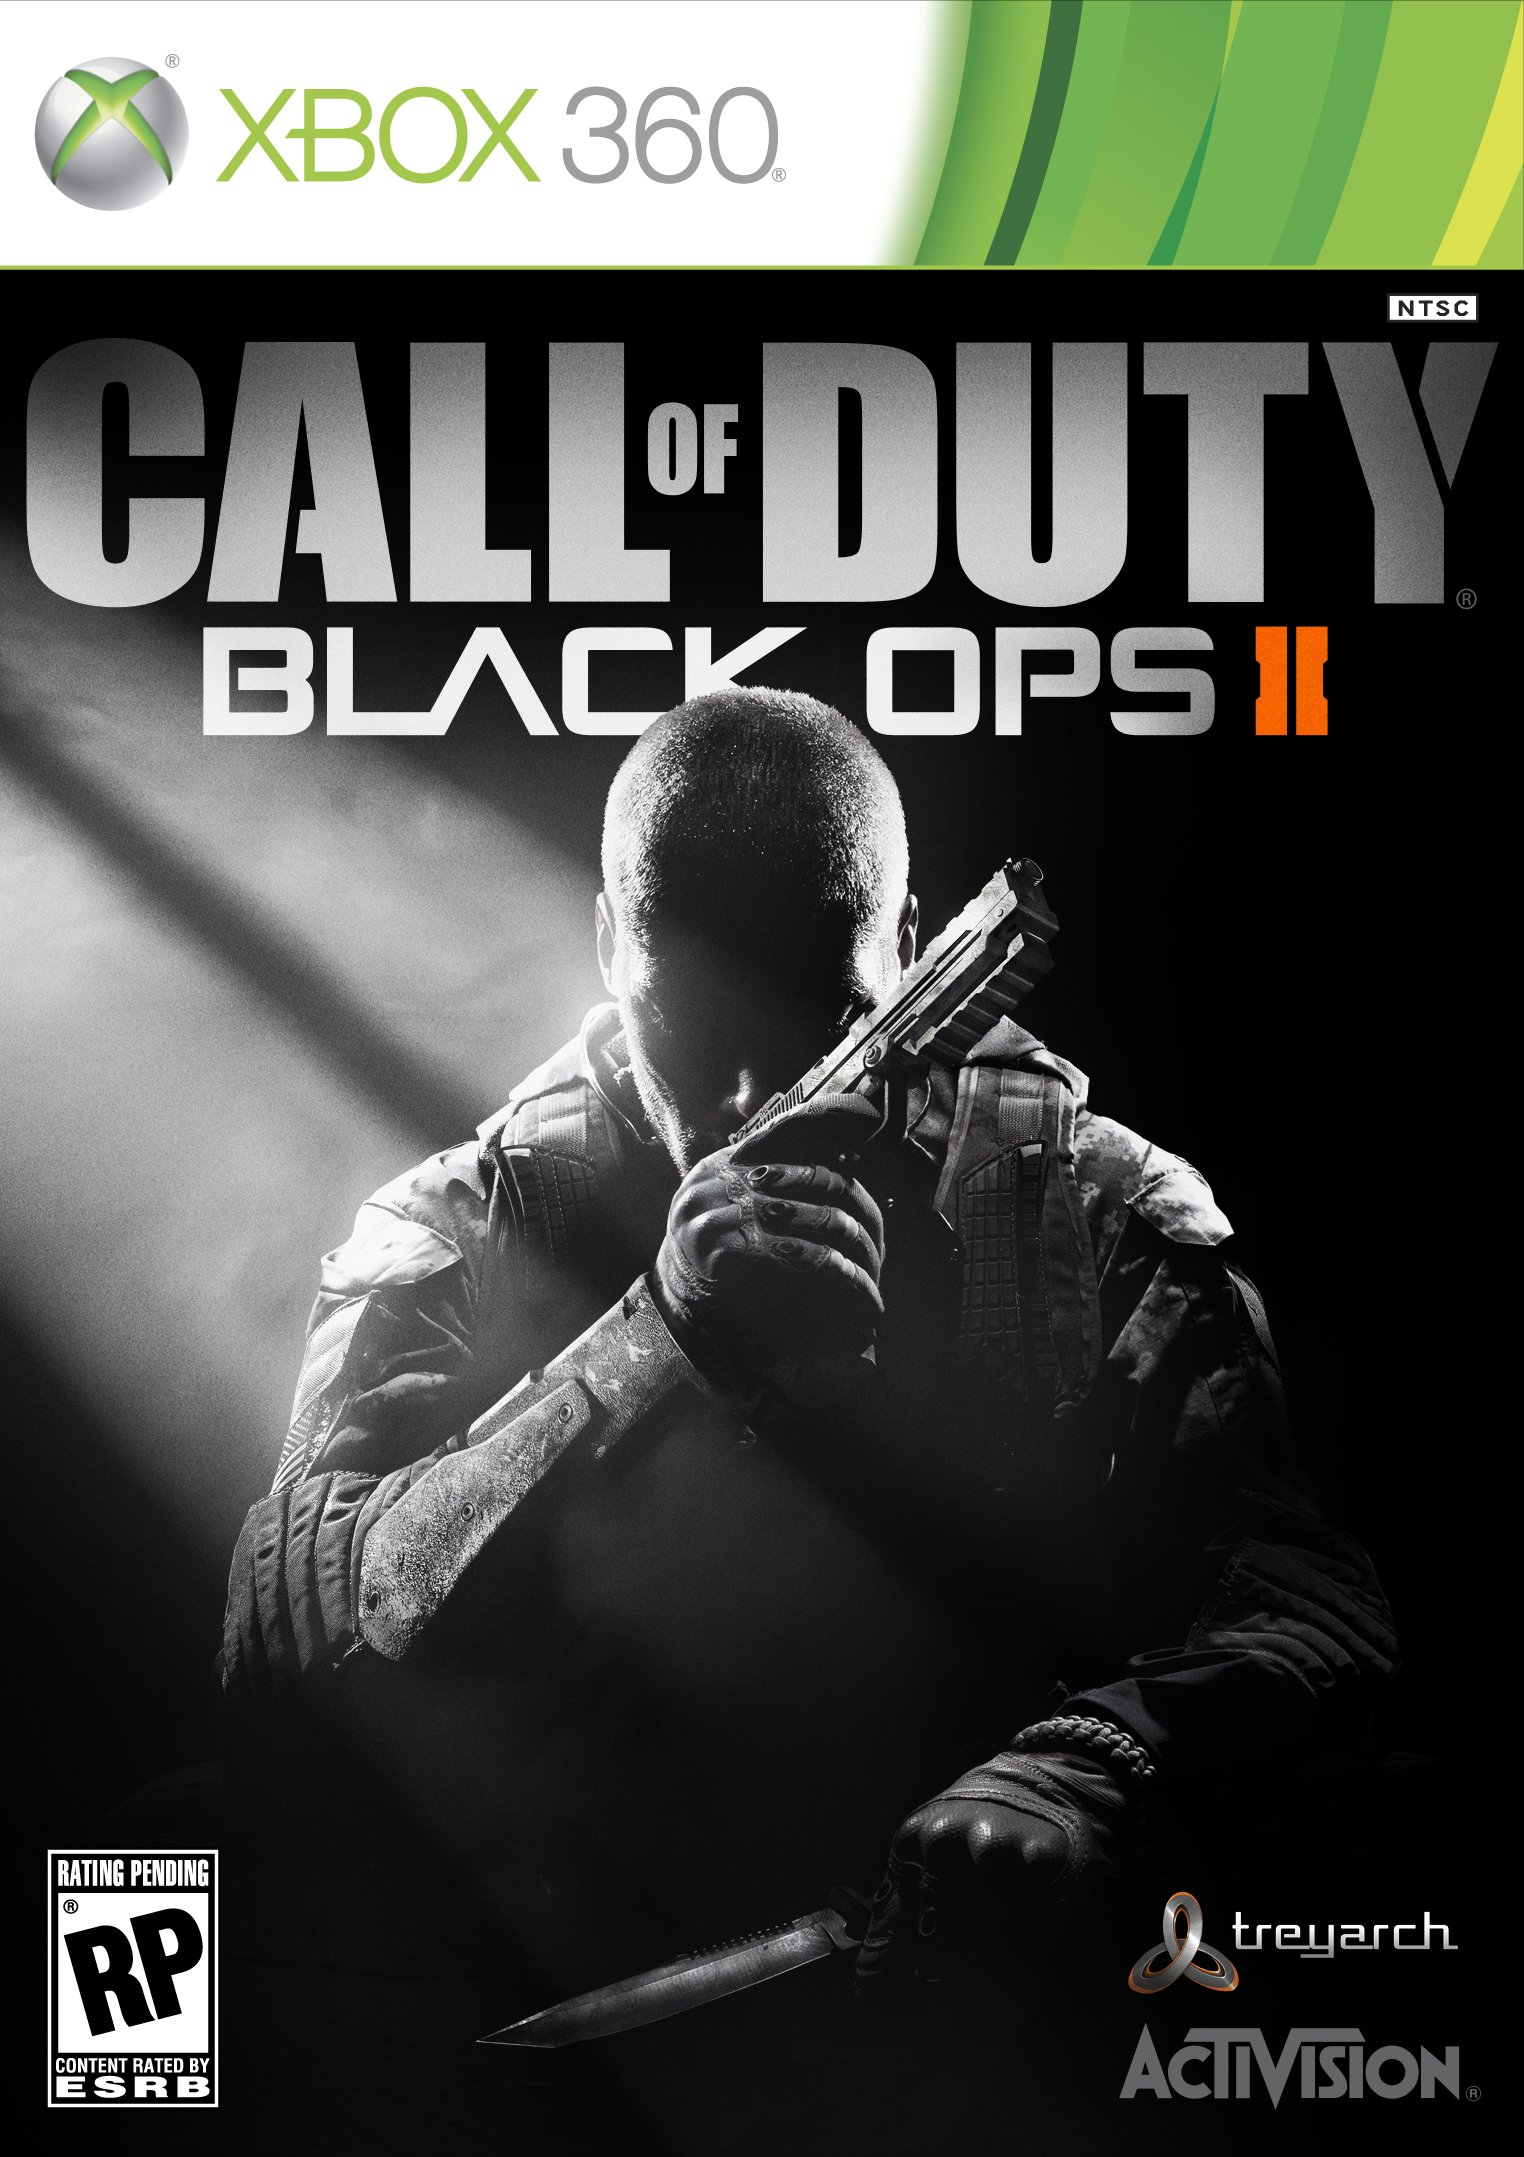 Call of duty black ops 2 release date in Sydney